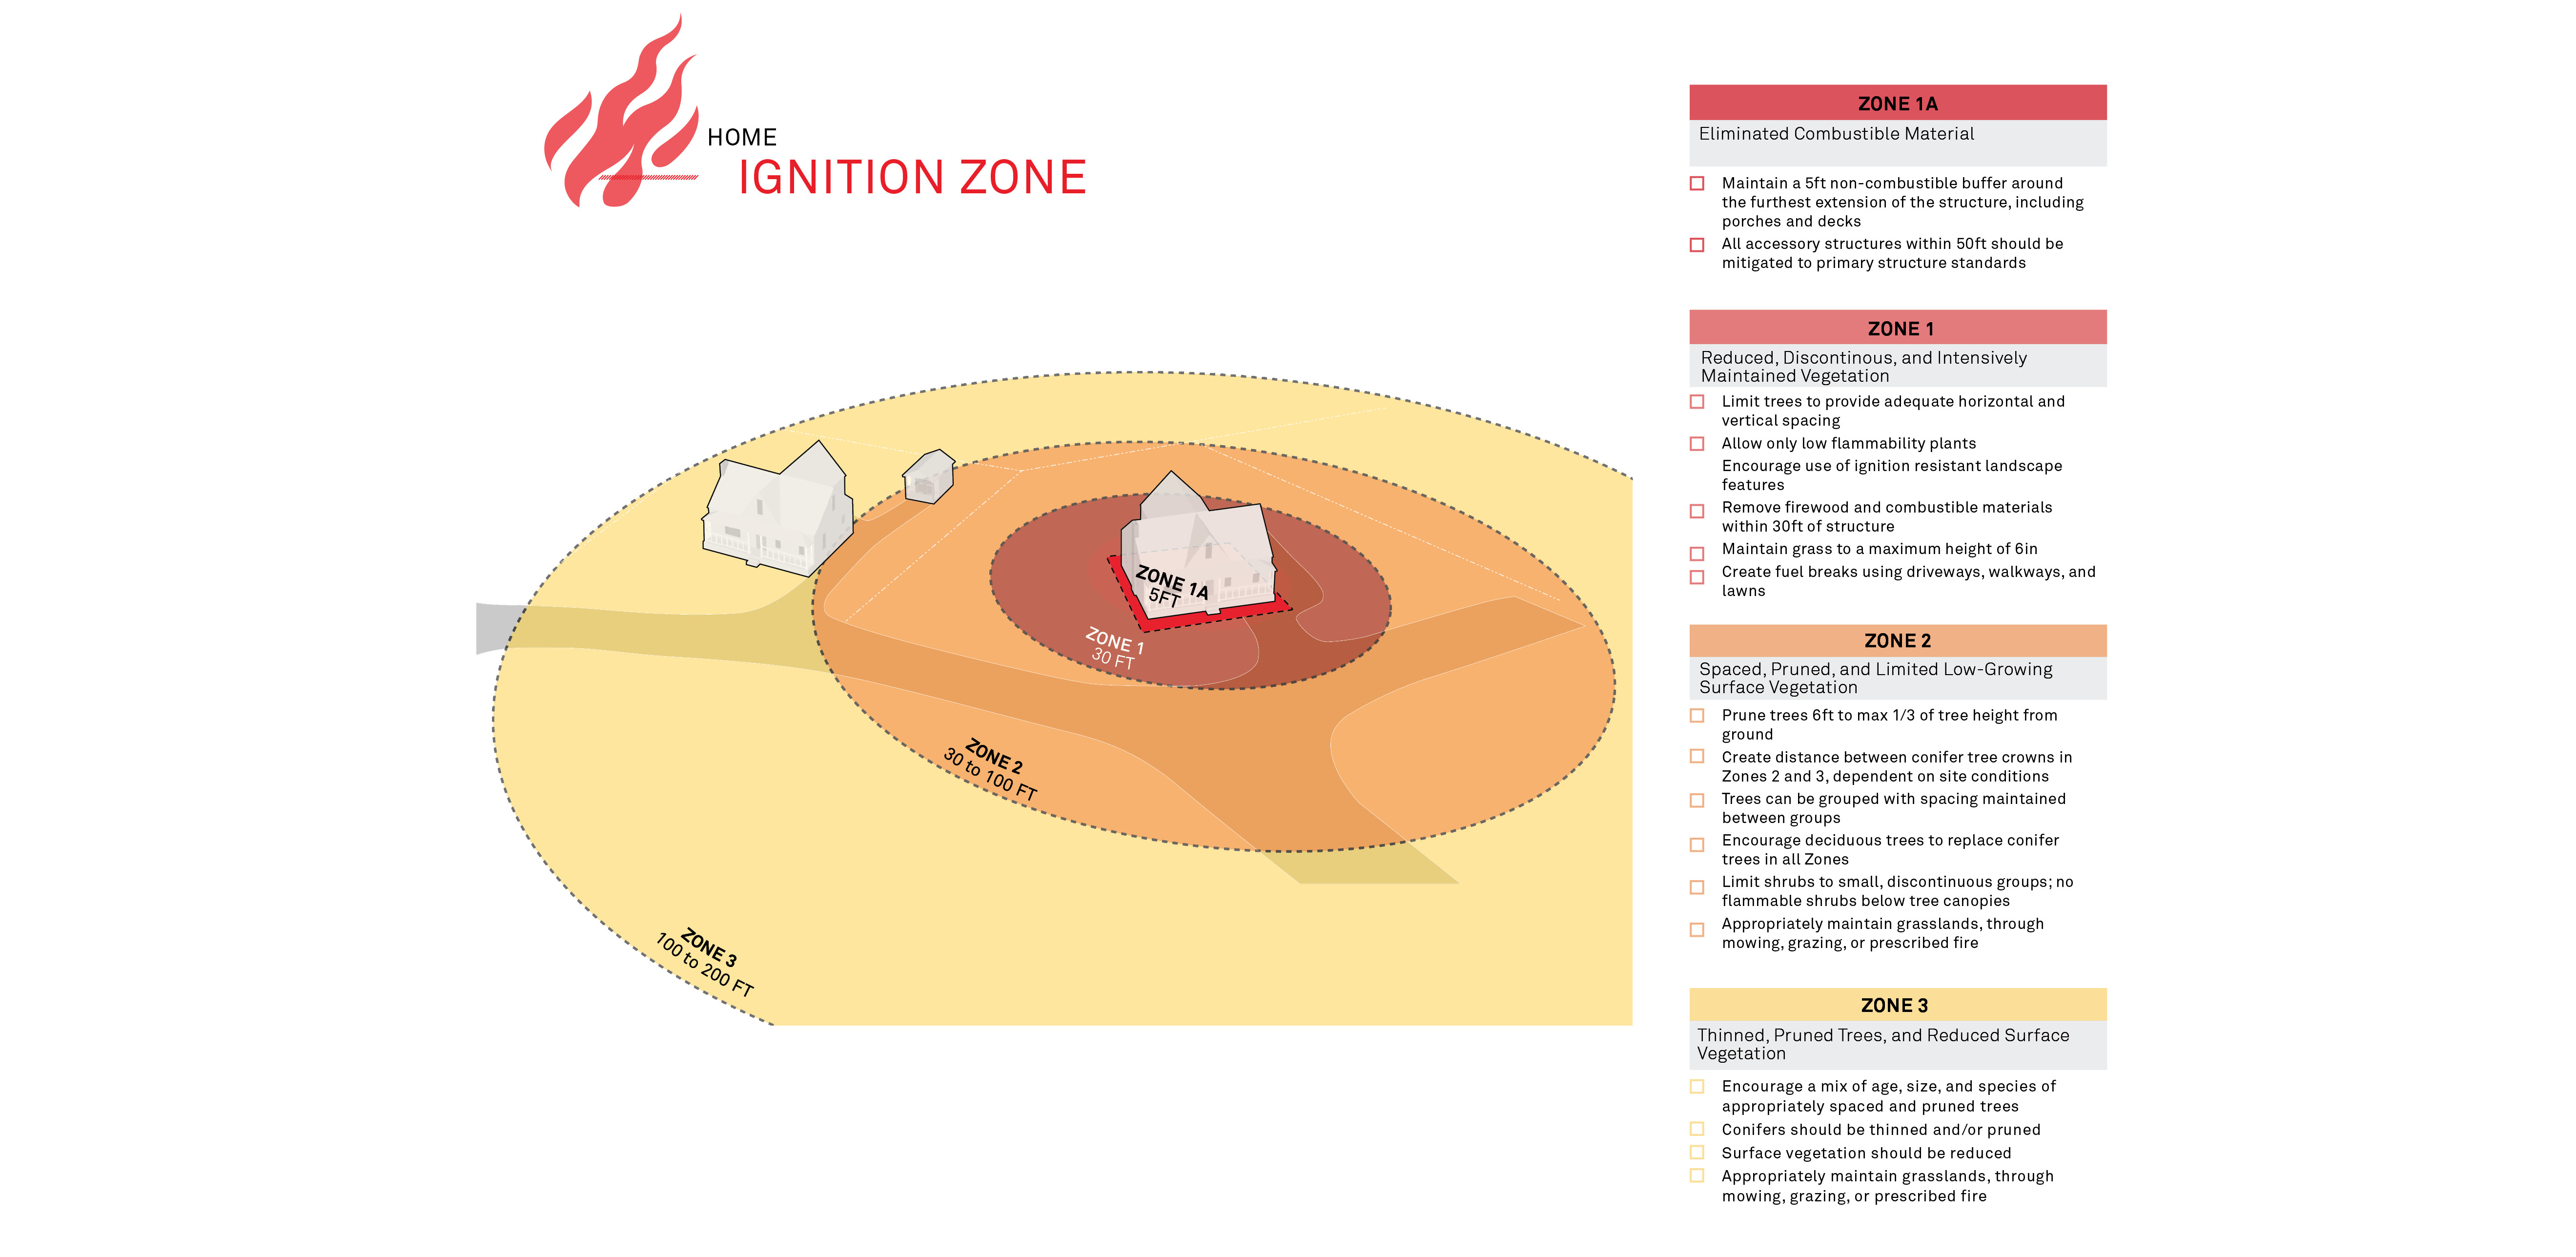 Home Ignition Zone